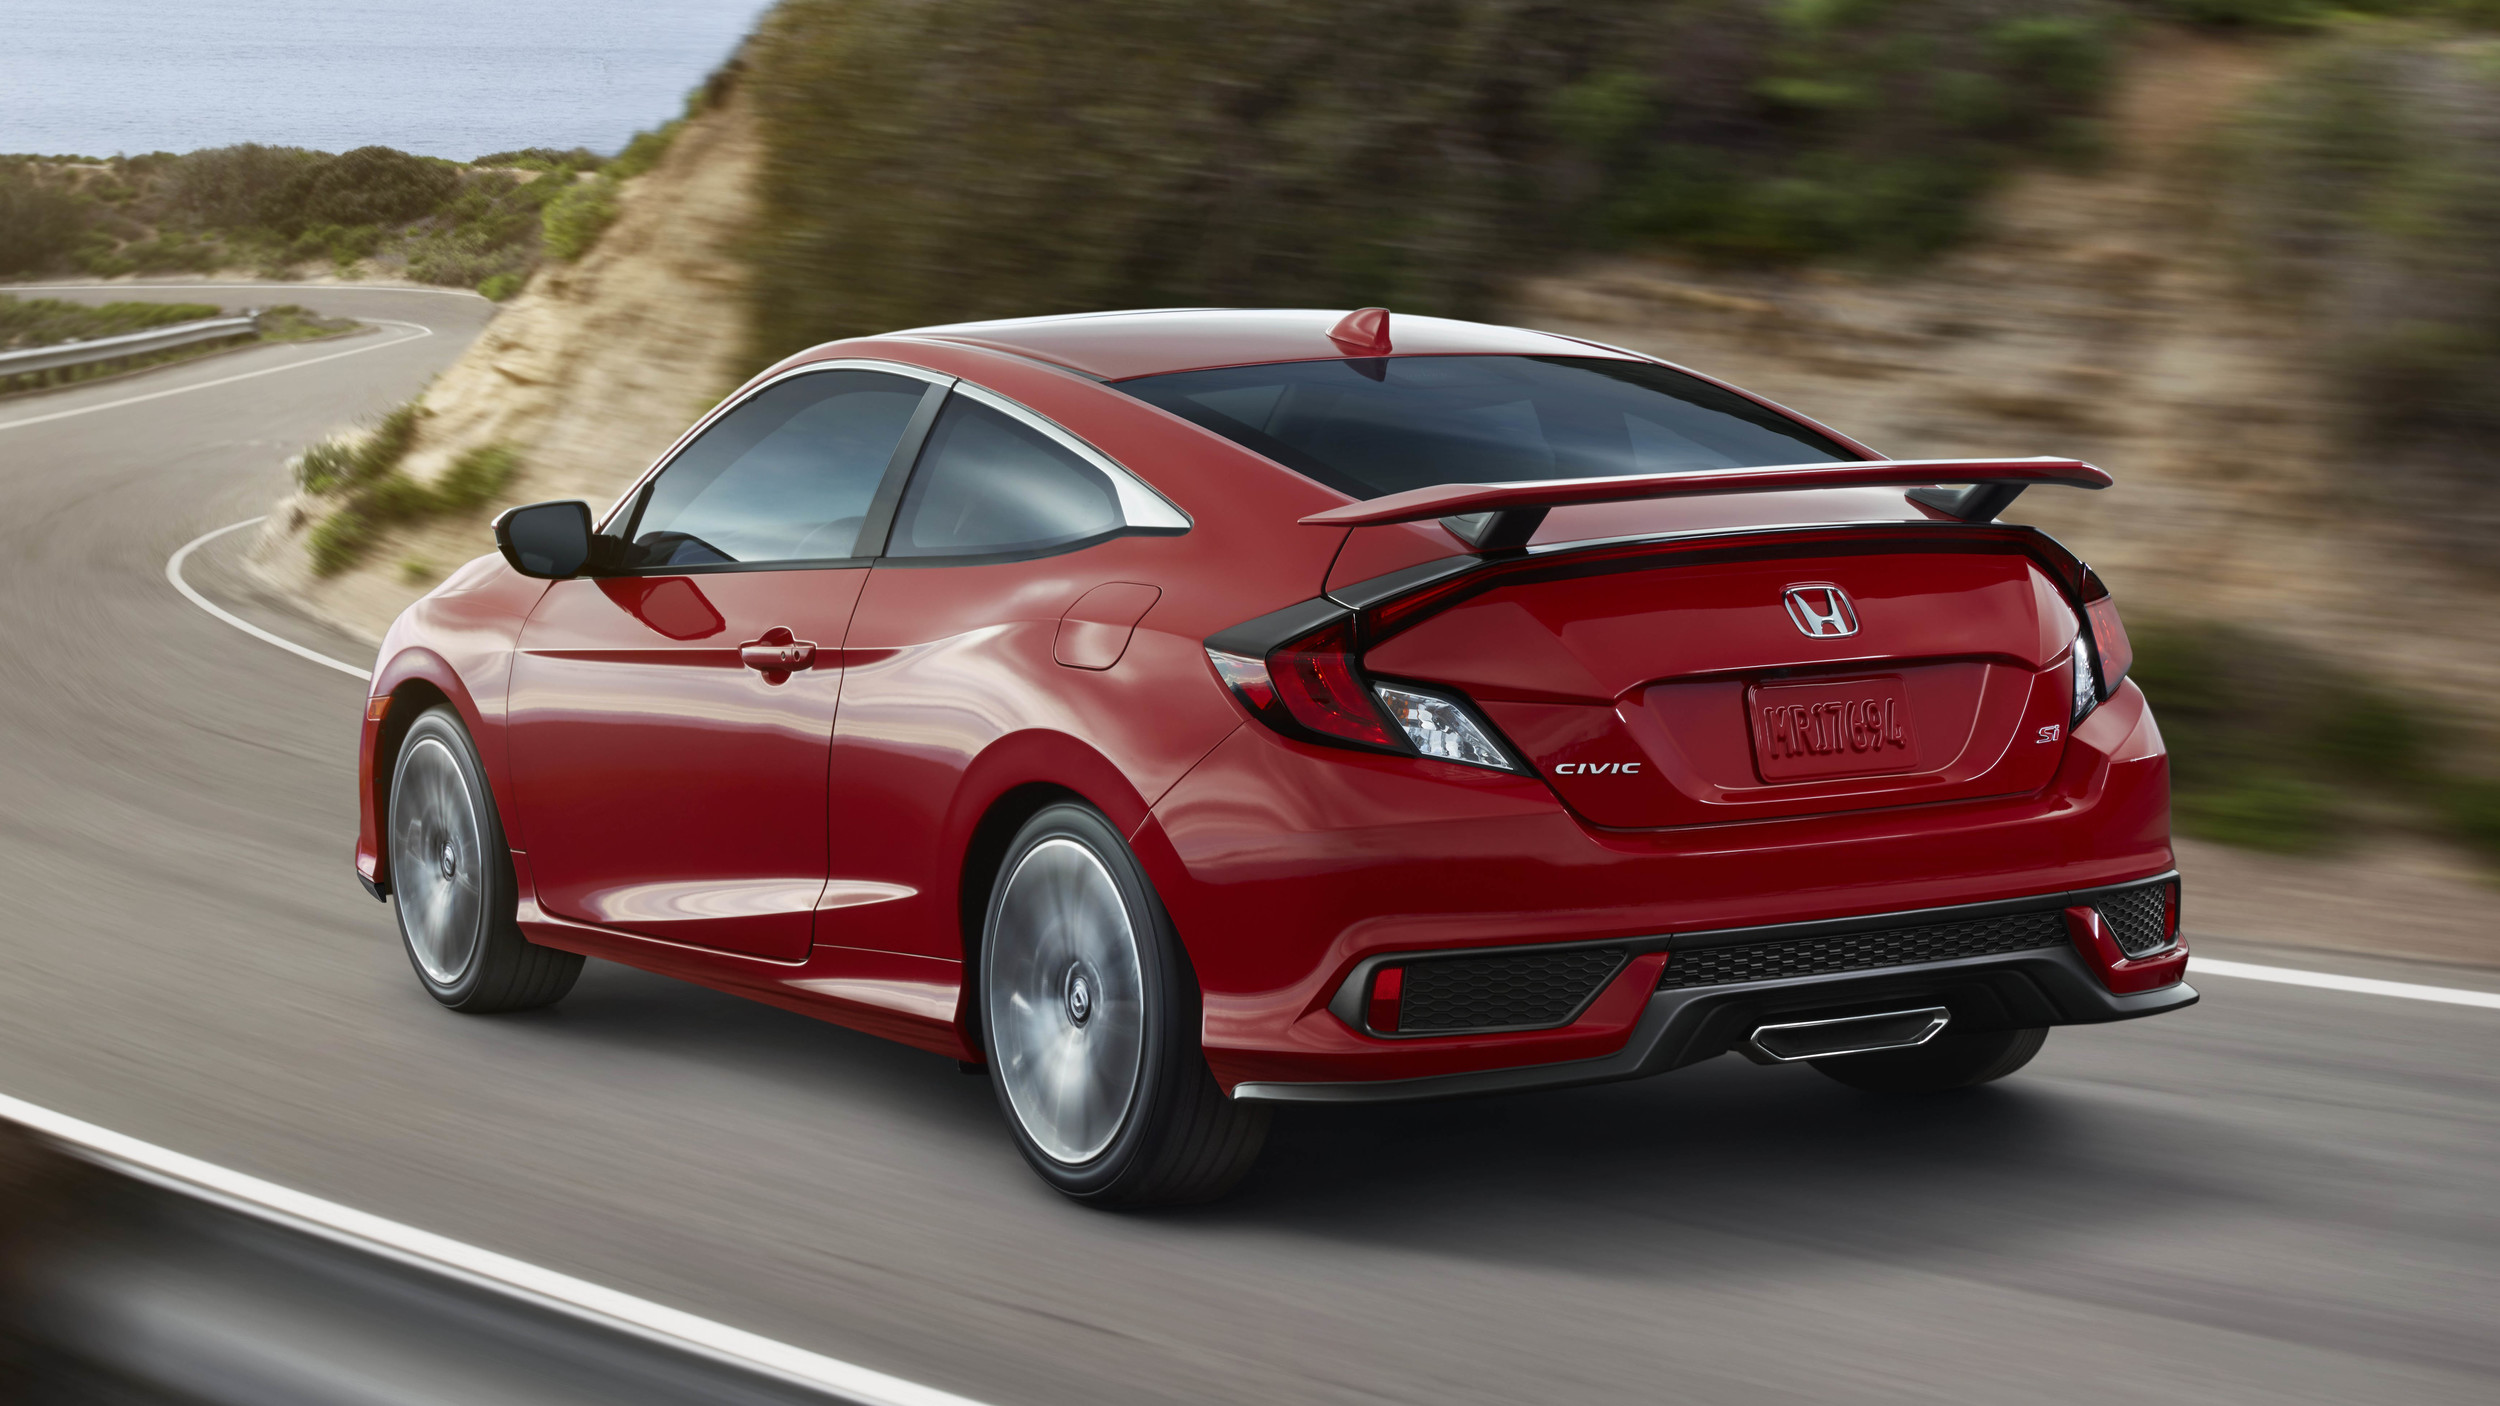 Honda Civic Si 2018 (10)